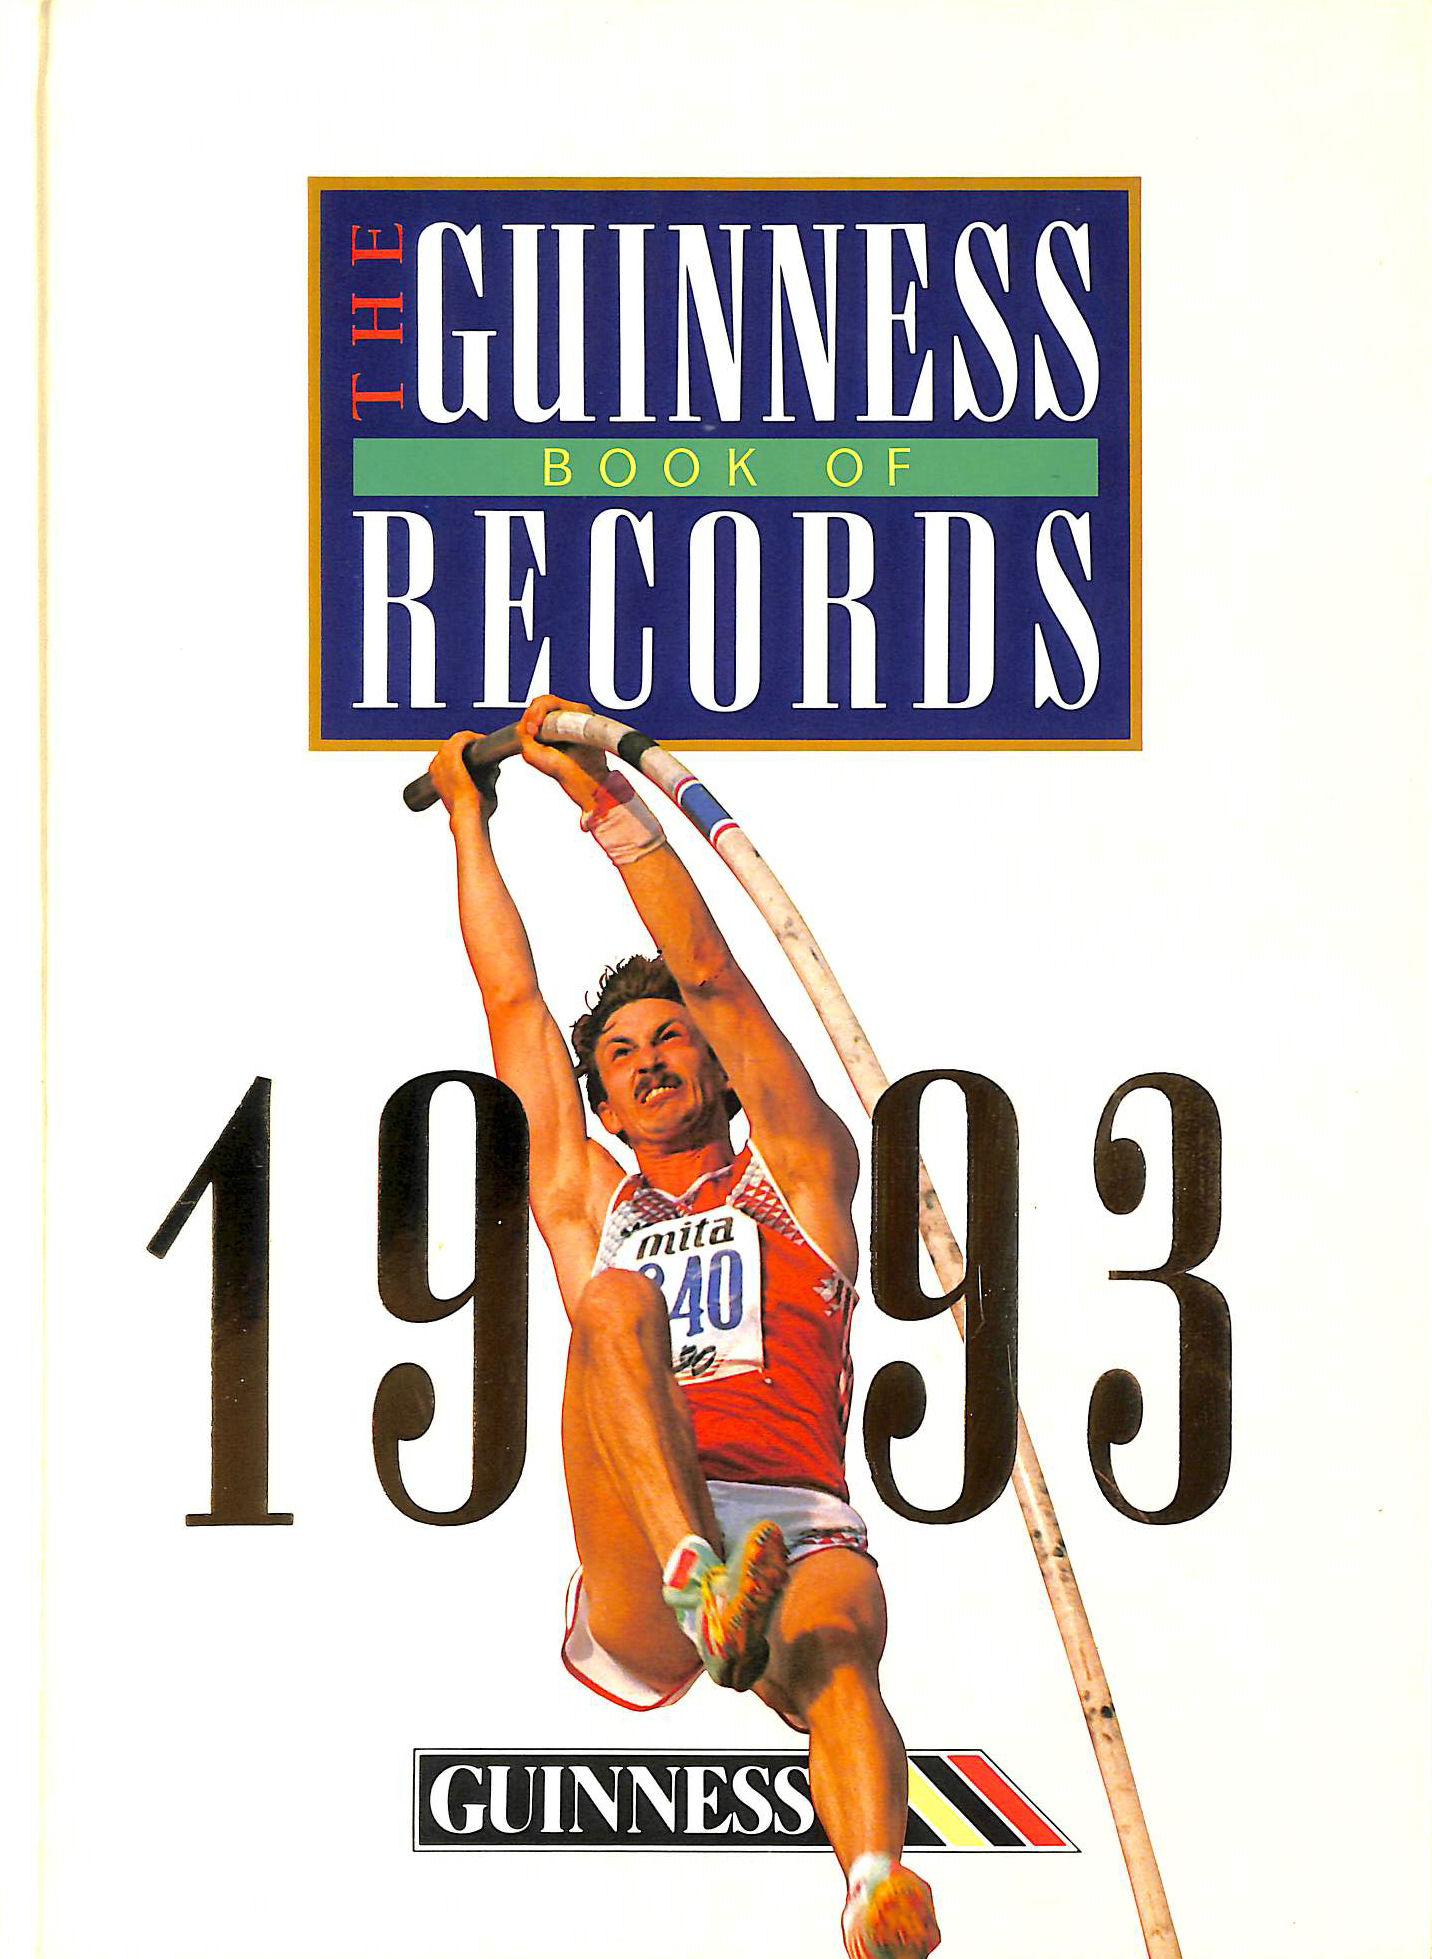 Image for The Guinness Book of Records 1993